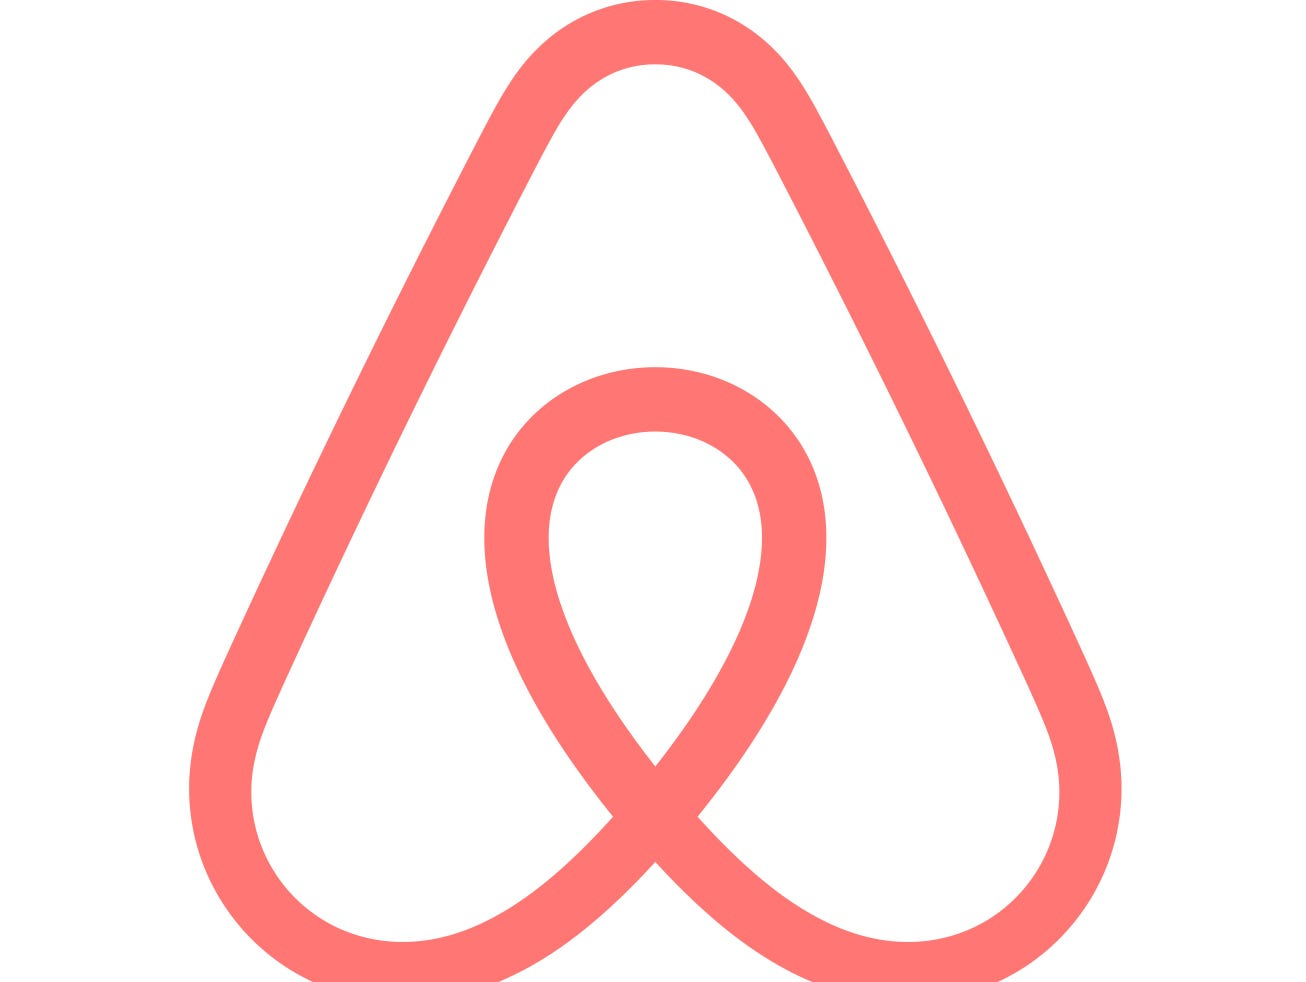 Airbnb has been facing mounting pressure in the Big Apple.